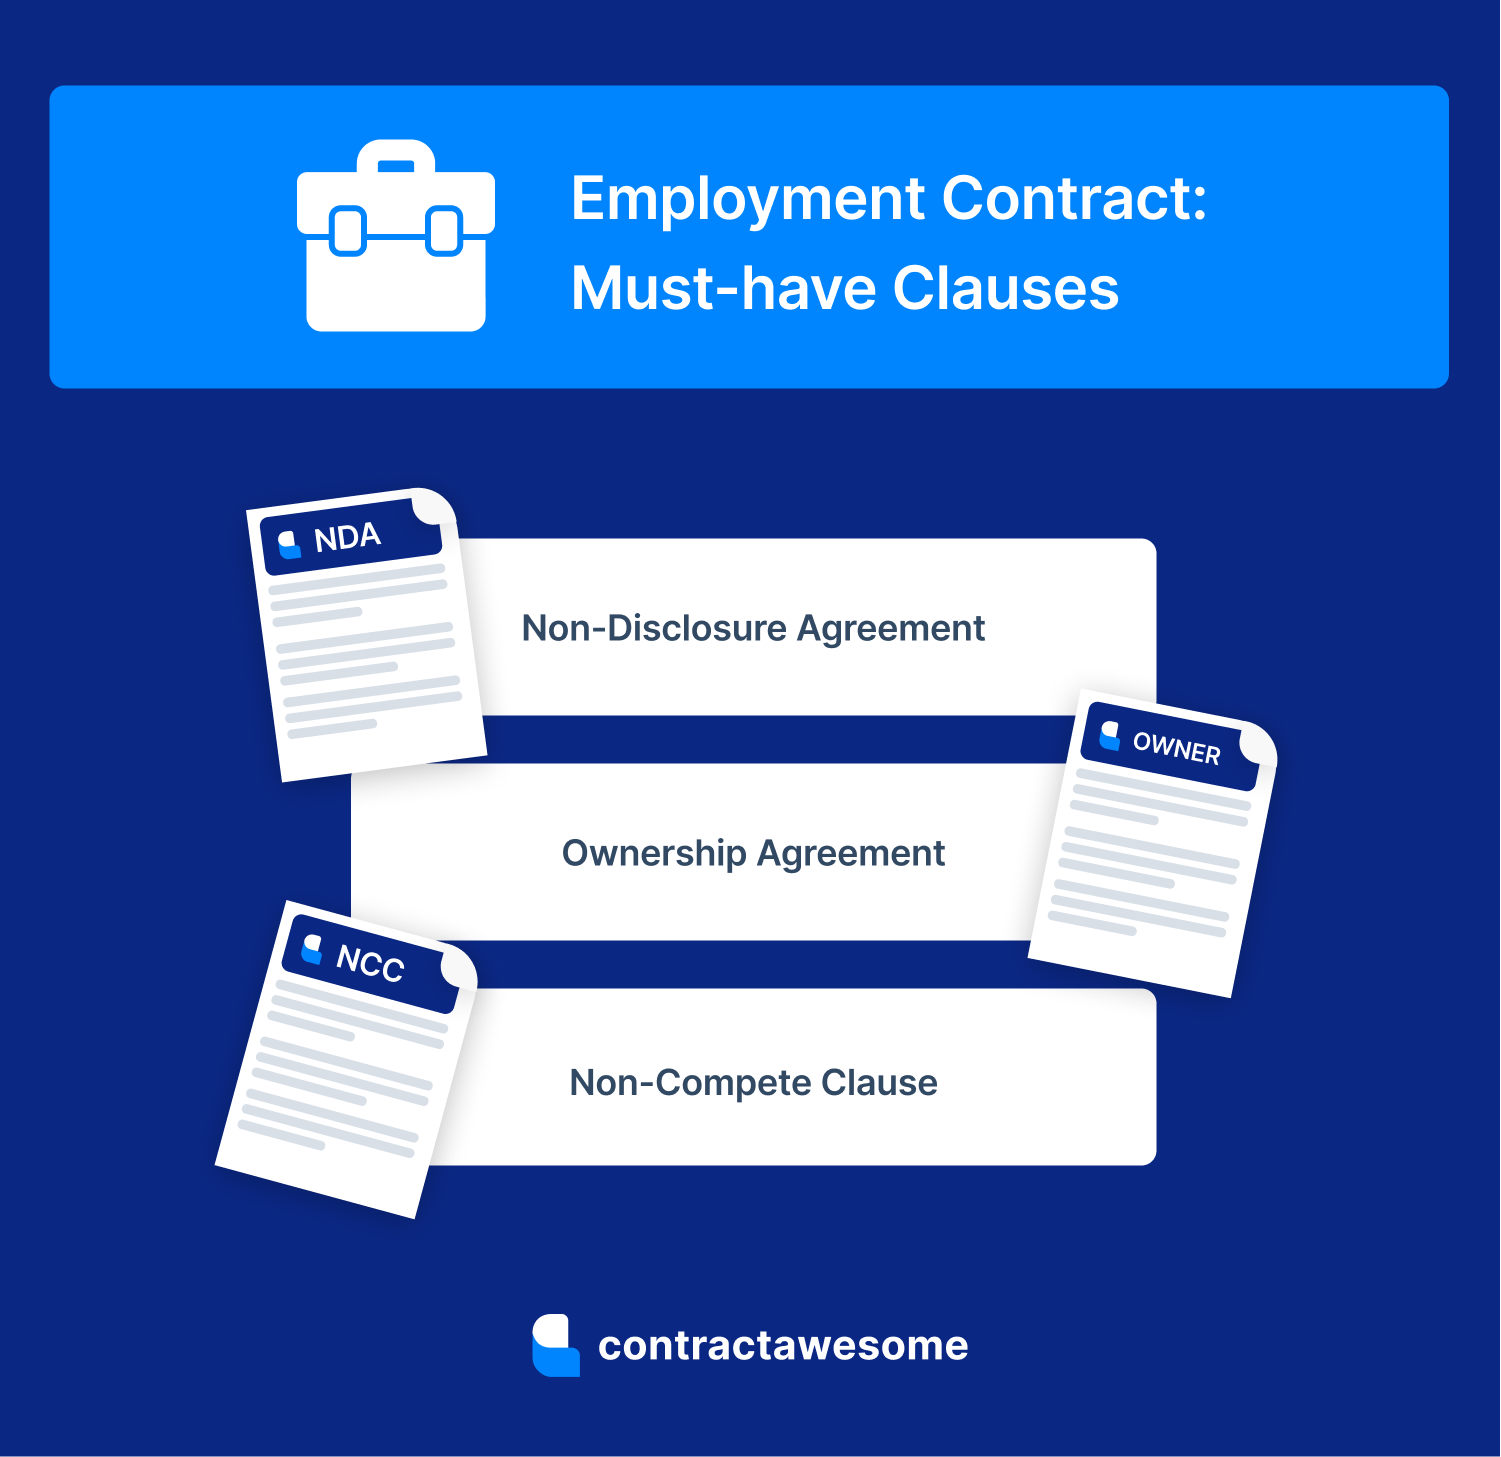 Here Are The Musthave Clauses For Your Employmentagreement Learn More Https Contractawesome Com Everything About Contract Management Employment Contract